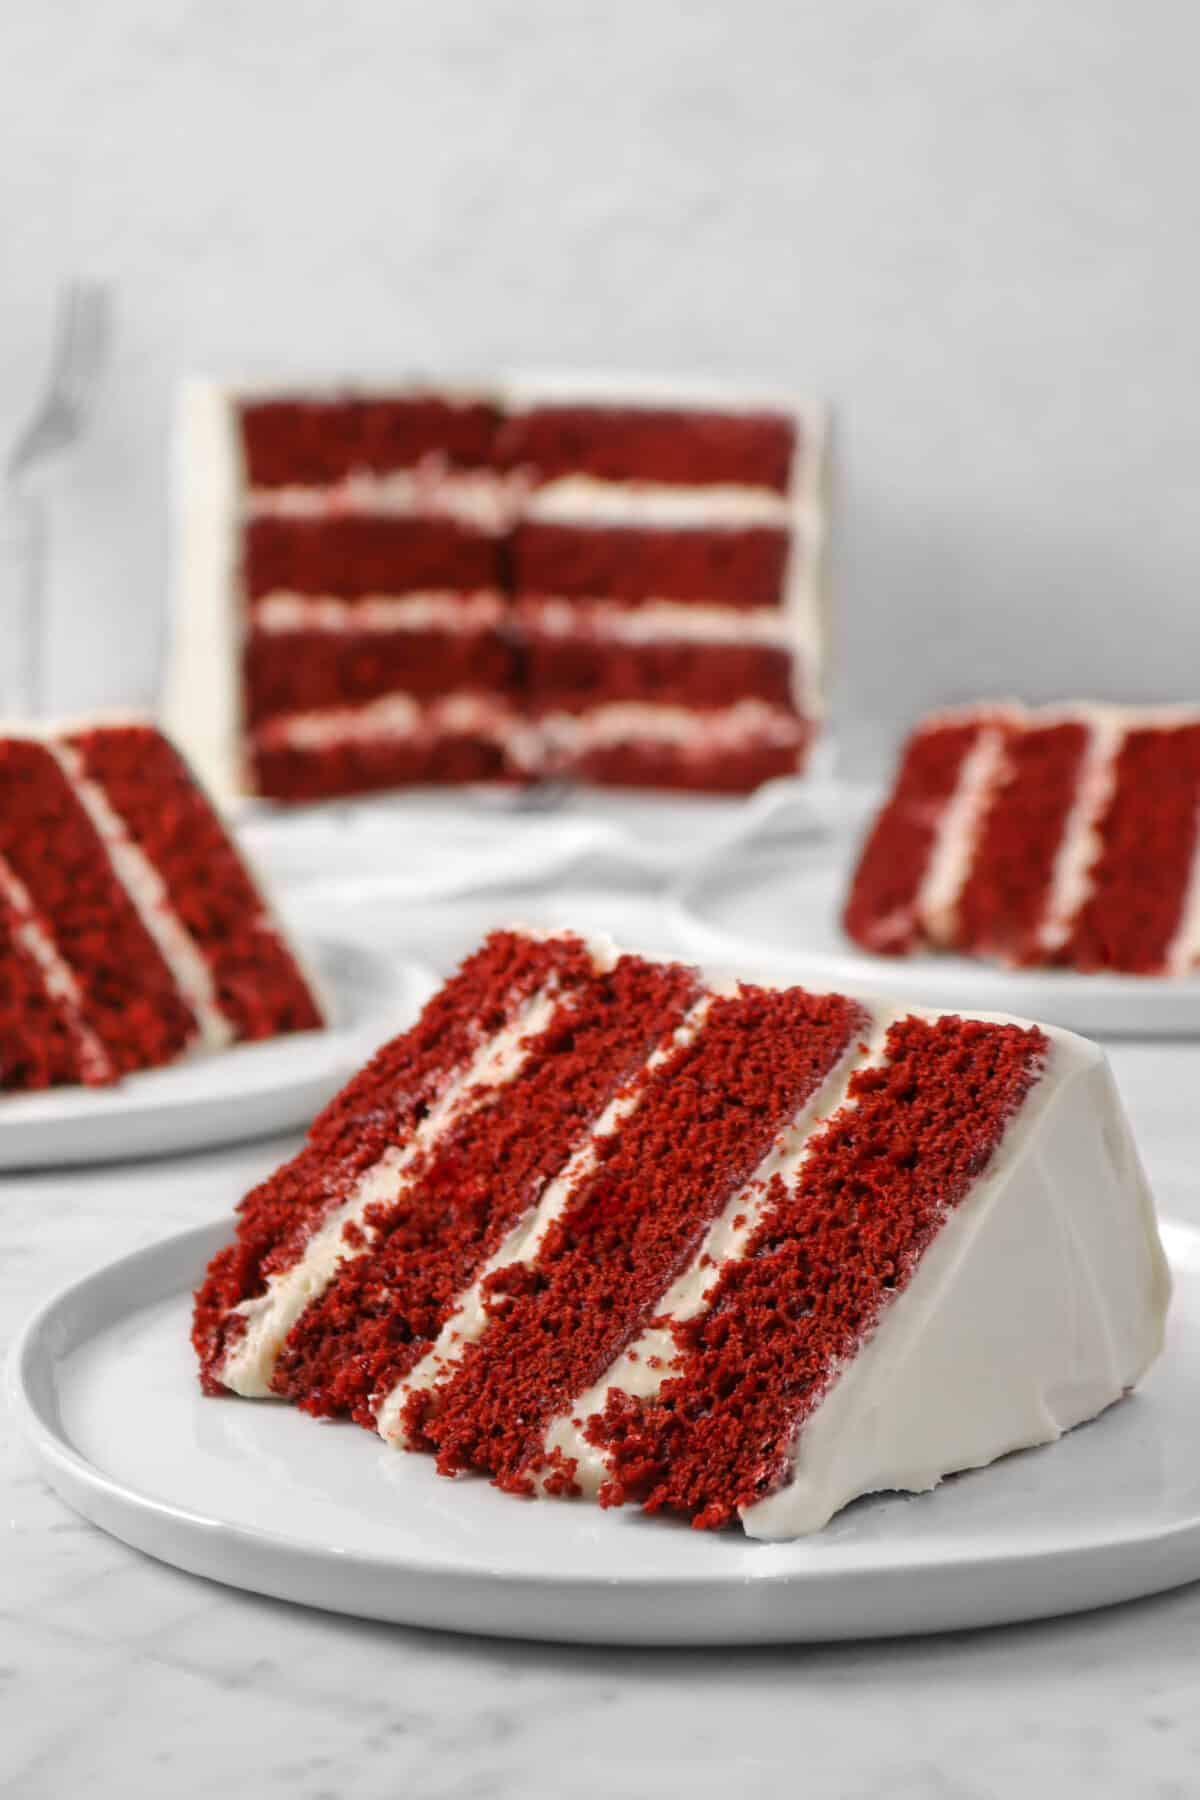 three slices of red velvet cake on white plates with the cake behind them